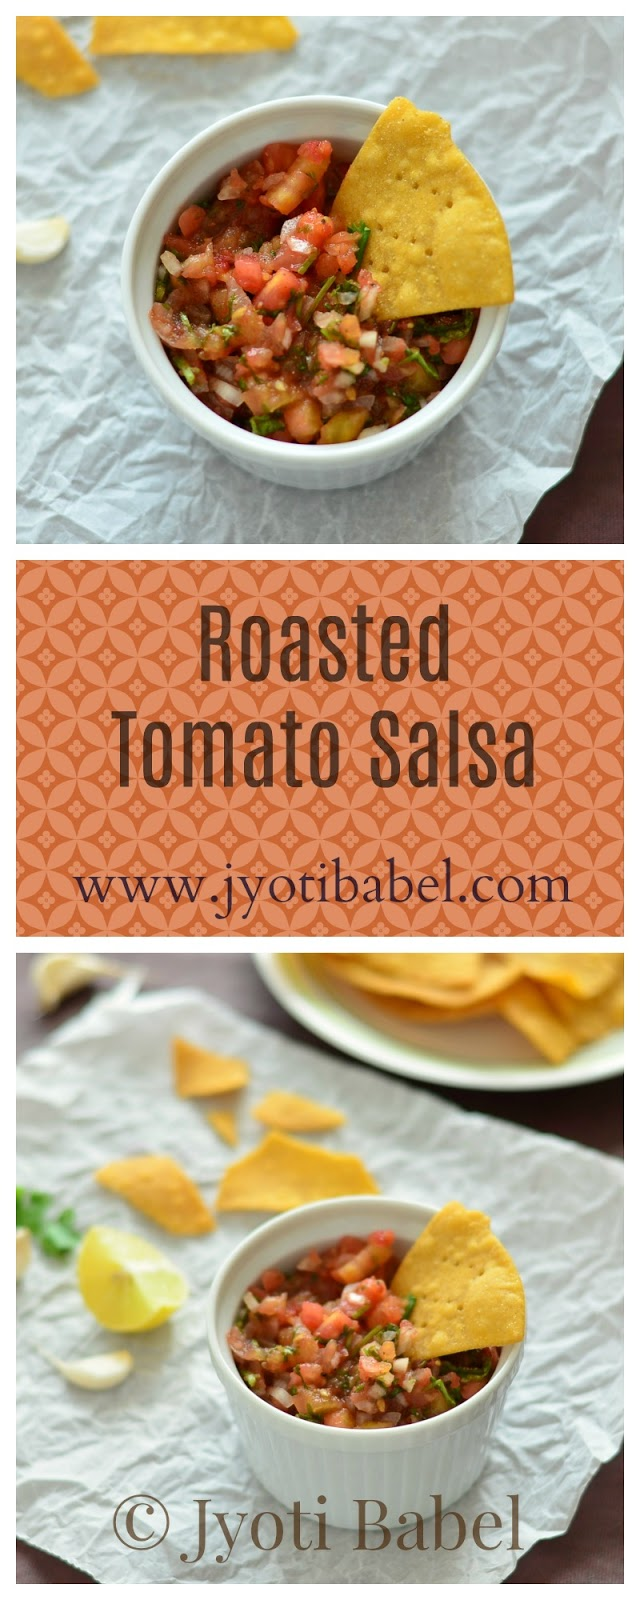 Roasted Tomato Salsa is one of the must accompaniments with tortilla chips. A medley of chopped roasted tomatoes, onions, chillies, coriander, spices and lemon juice makes for a lip-smacking dip. Recipe at www.jyotibabel.com